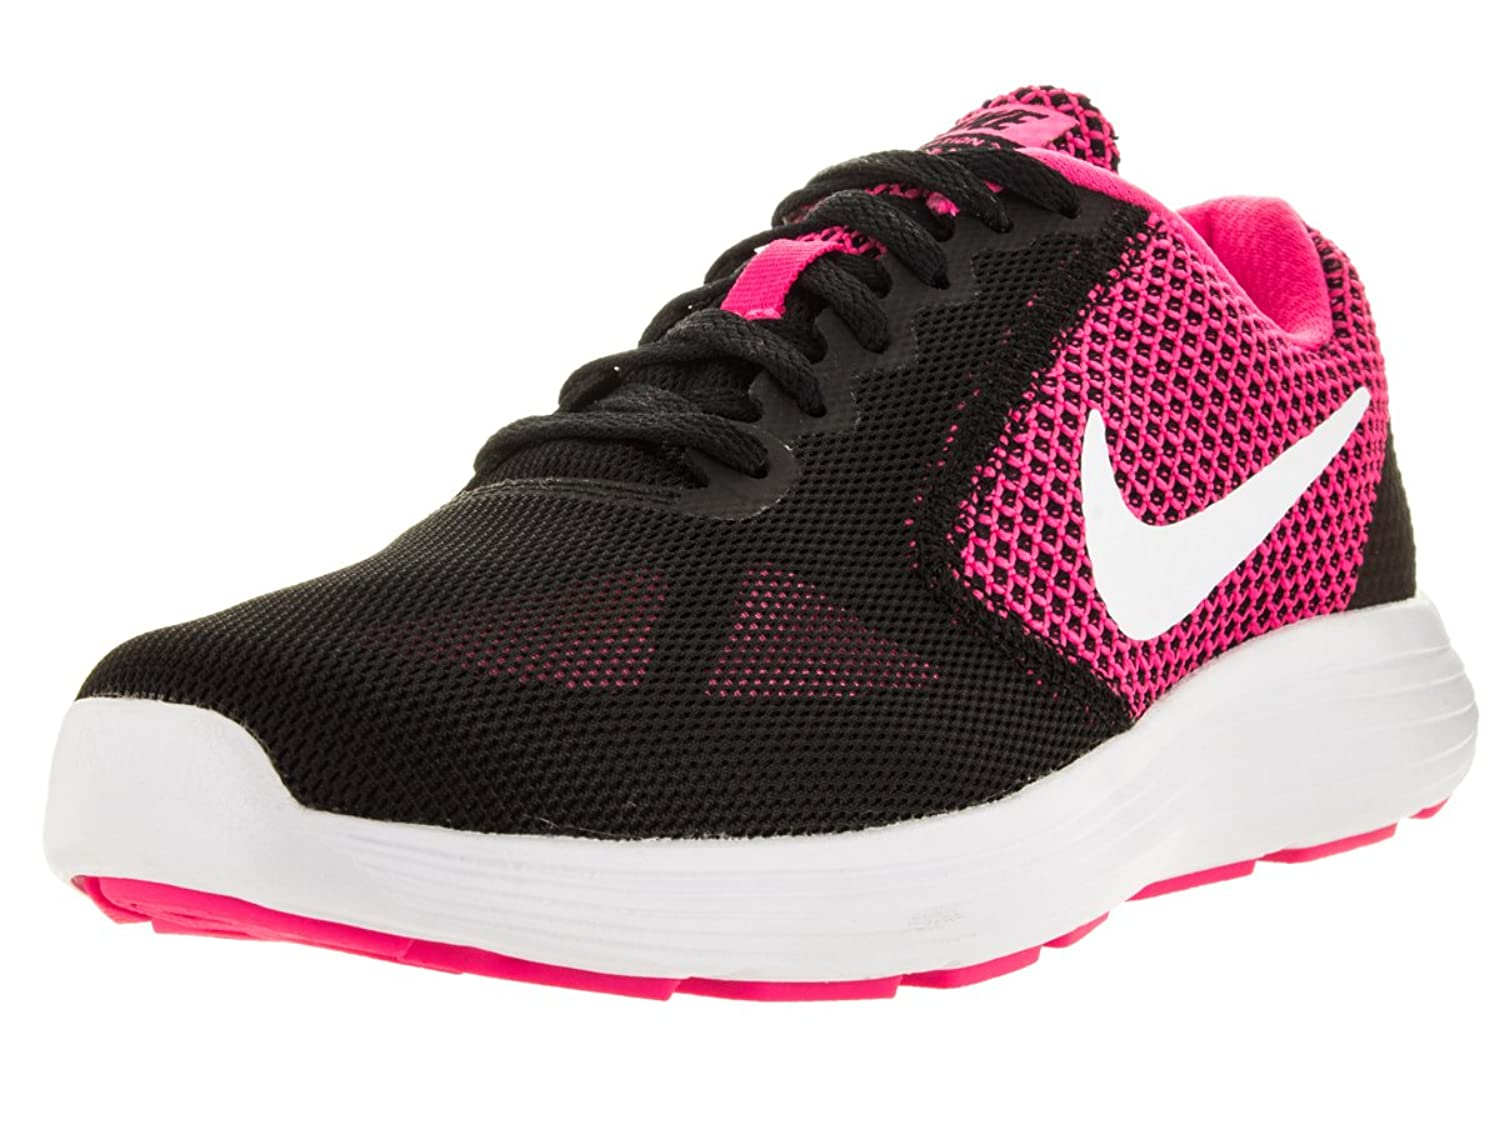 Nike Women's Revolution 3 Running Shoe - Black And Pink